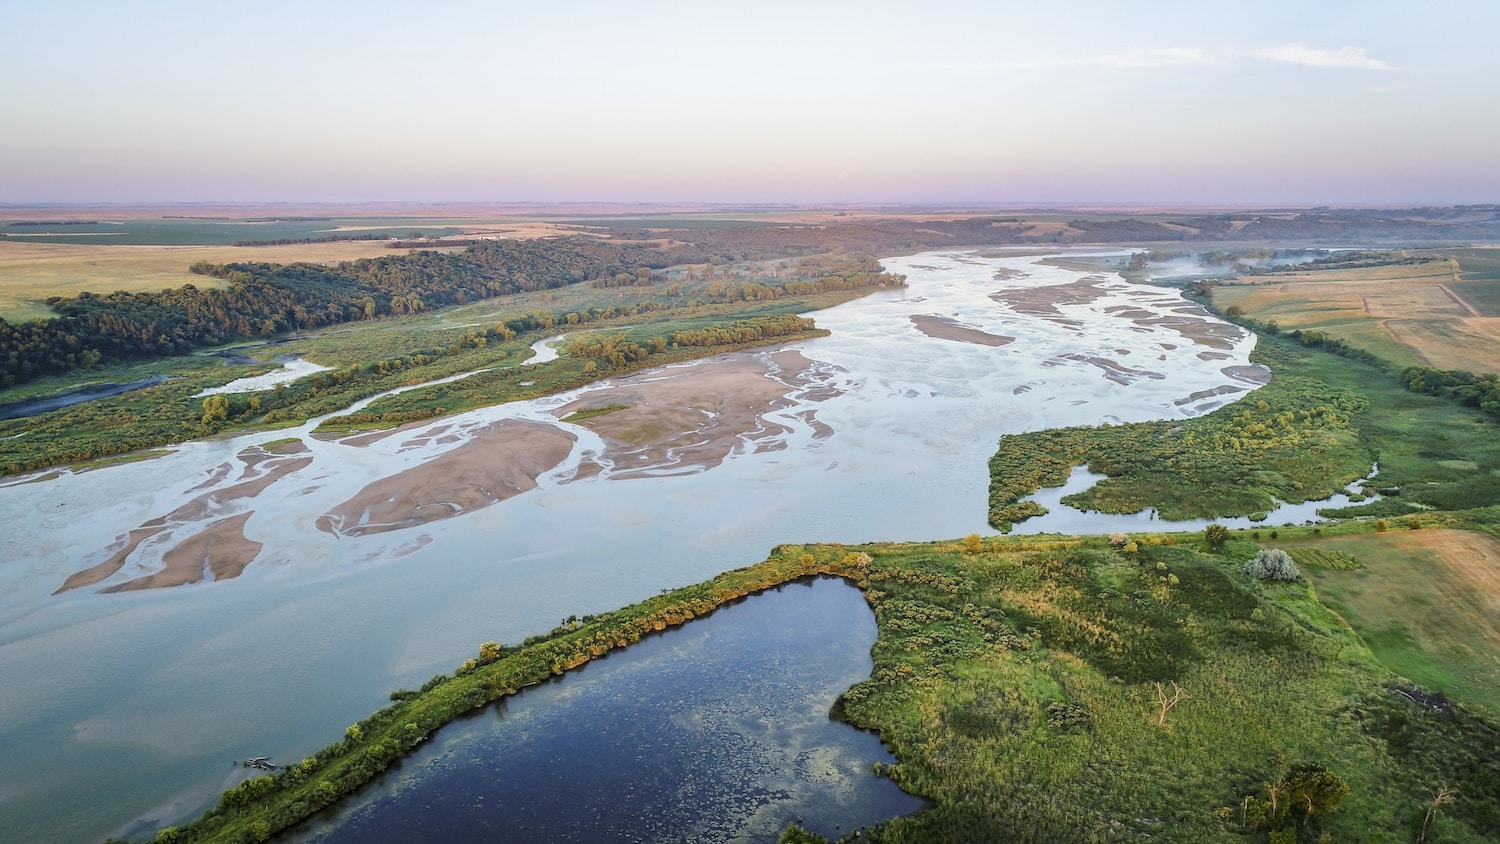 aerial photography view of lower Niobrara RIver in Nebraska Sandhills